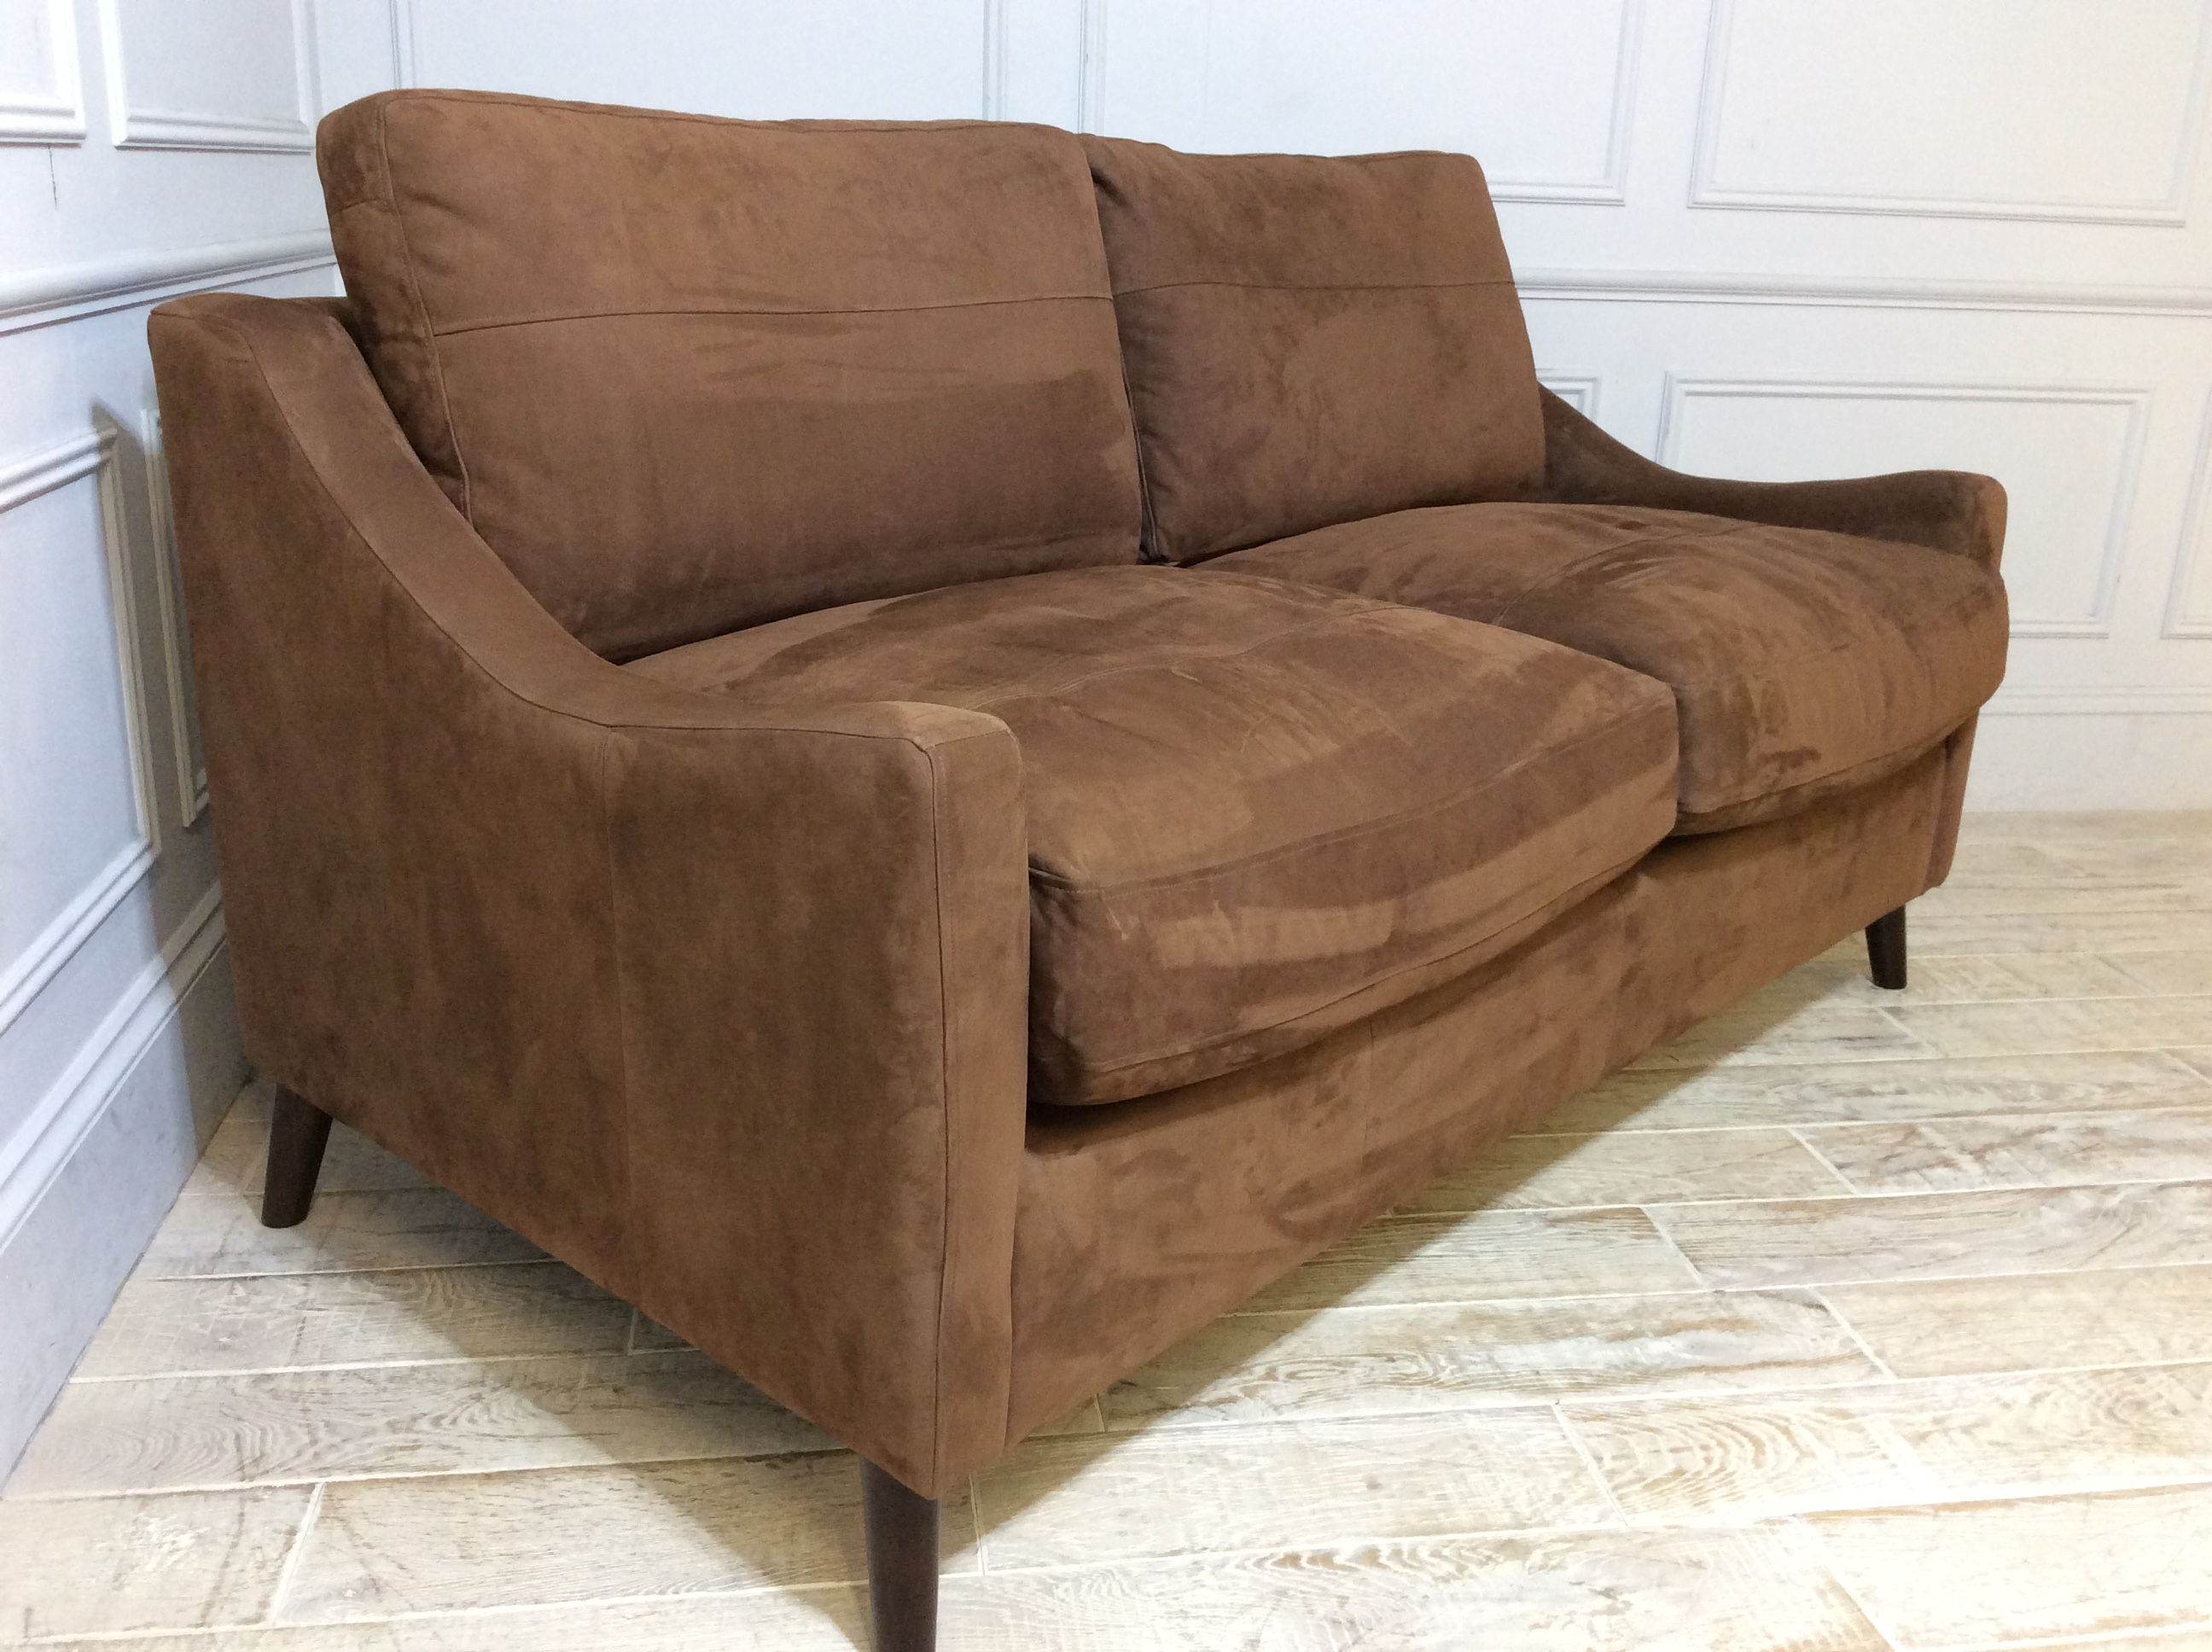 Weymouth 3 Seater Sofa Bed in Burnt Caramel